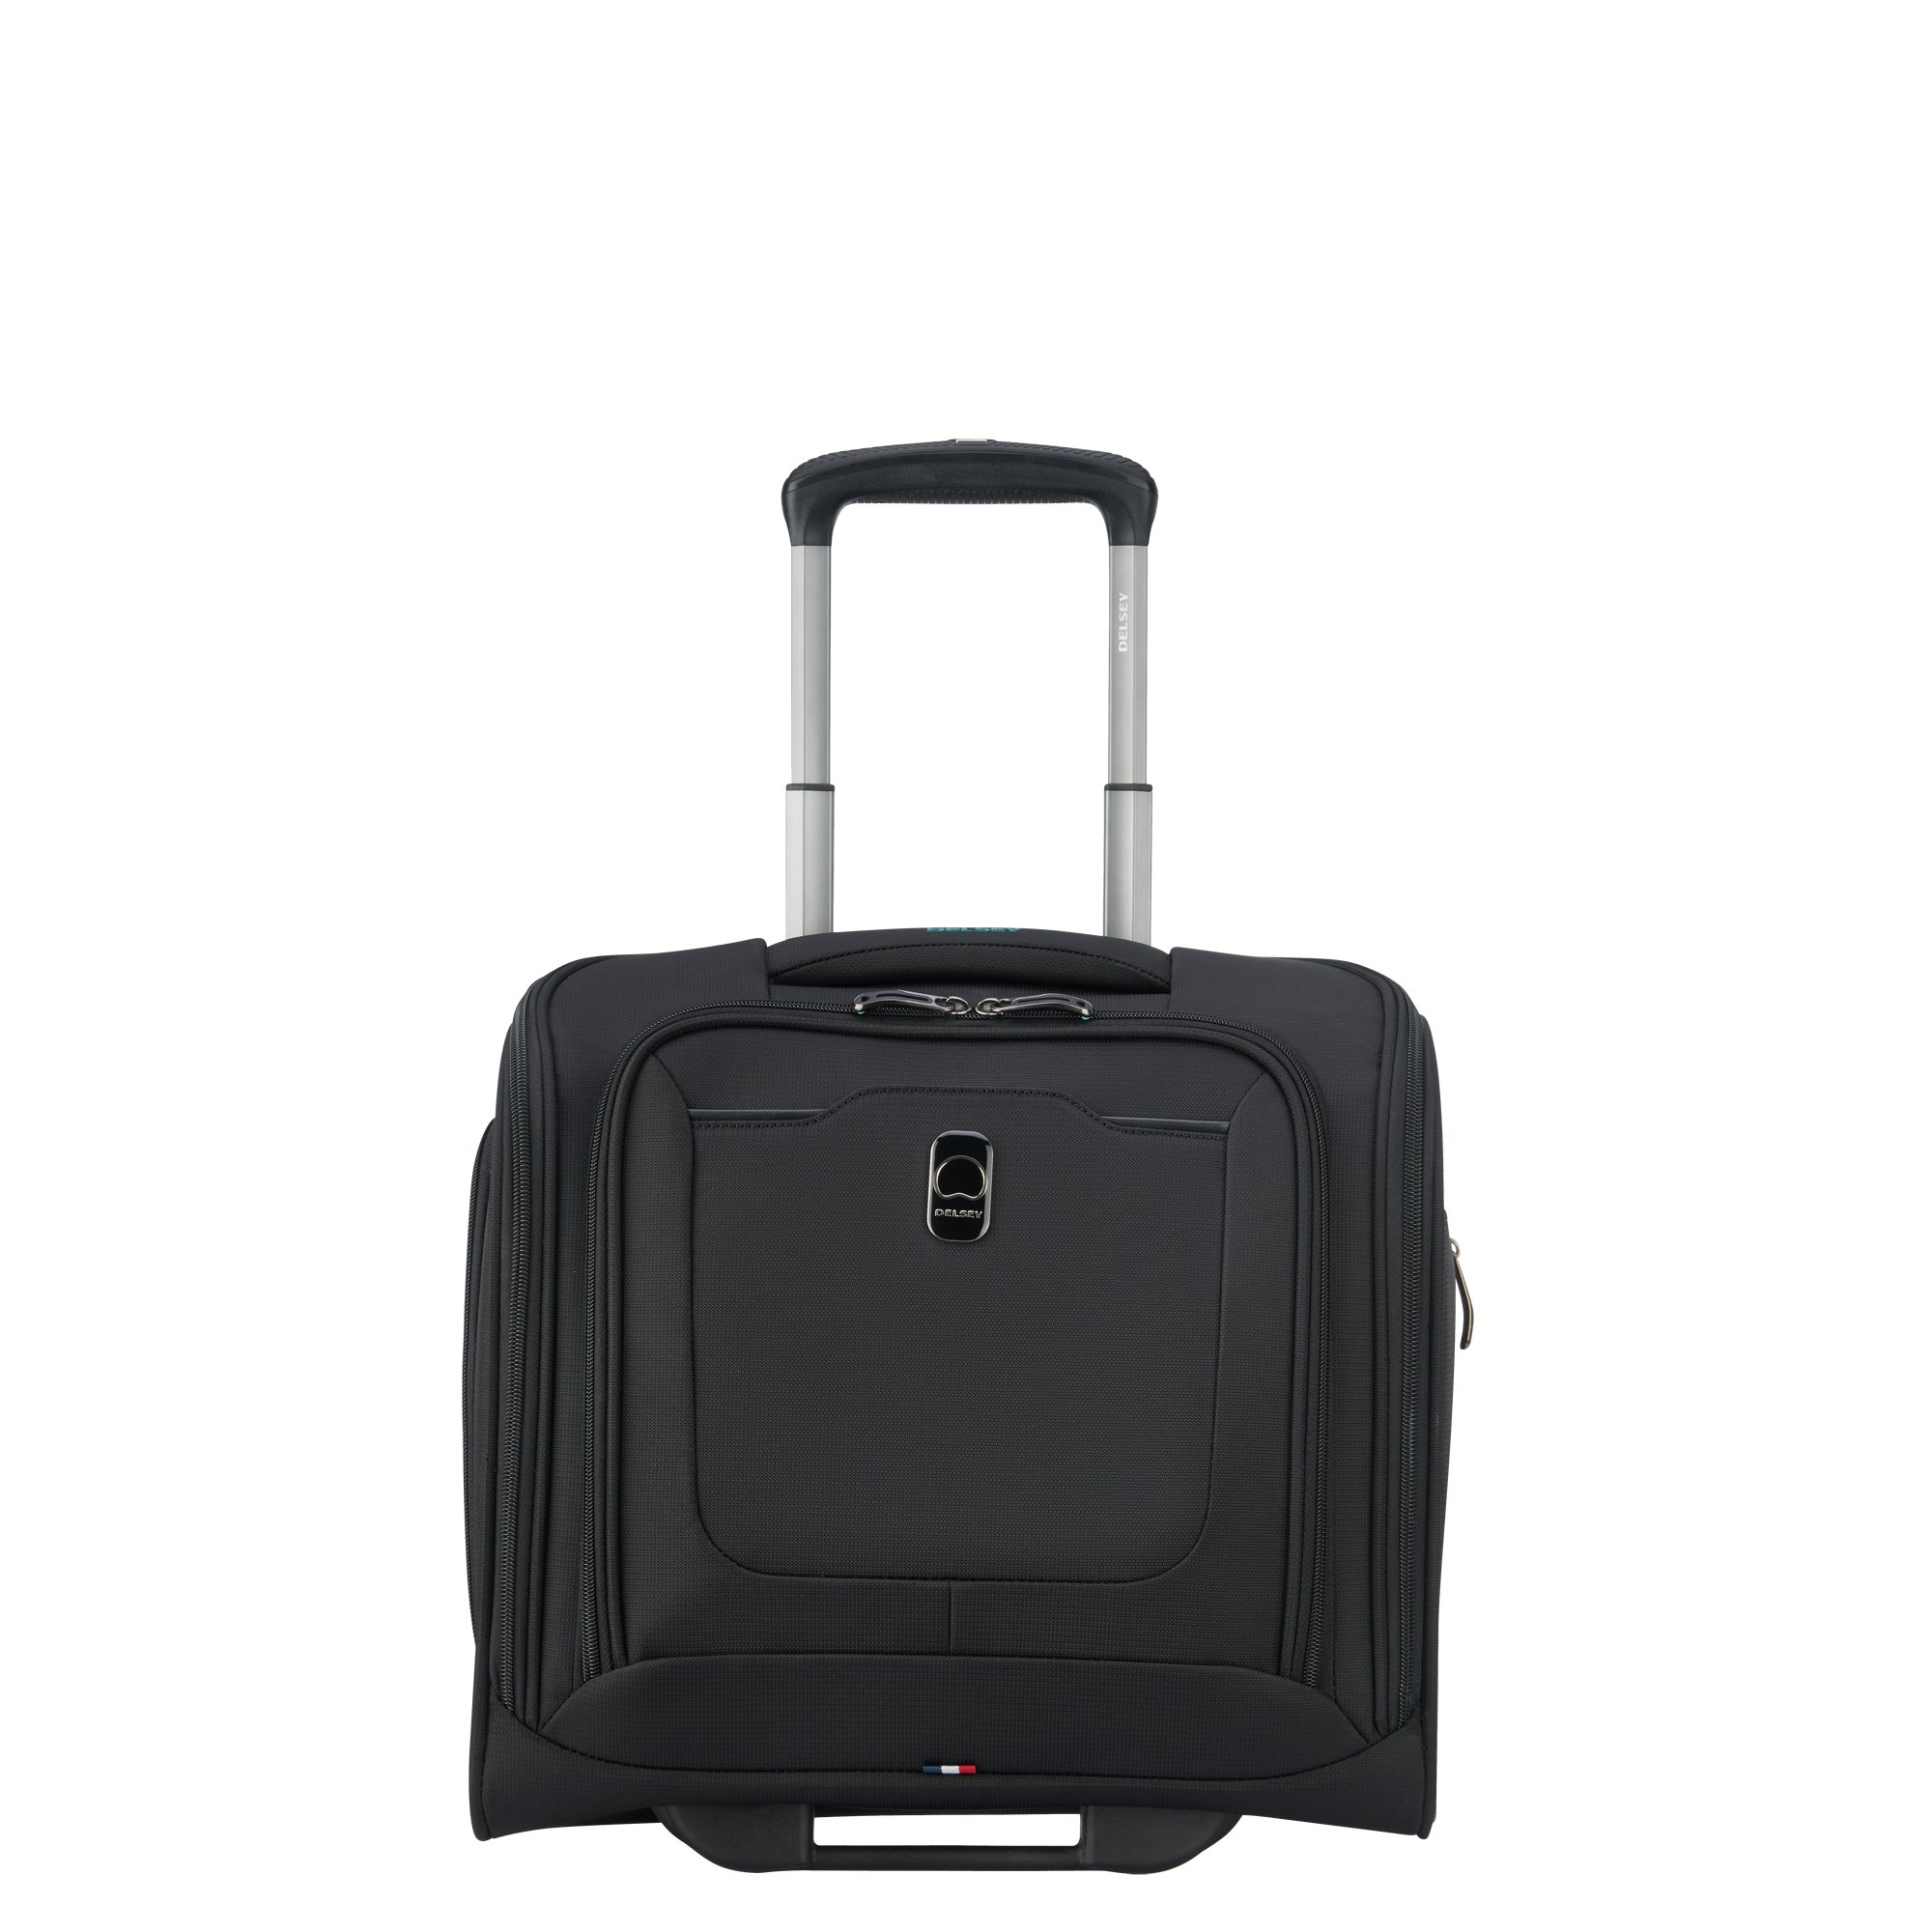 DELSEY Paris Hyperglide Softside Luggage Under-Seater with 2 Wheels, Black, Carry-on 15 Inch